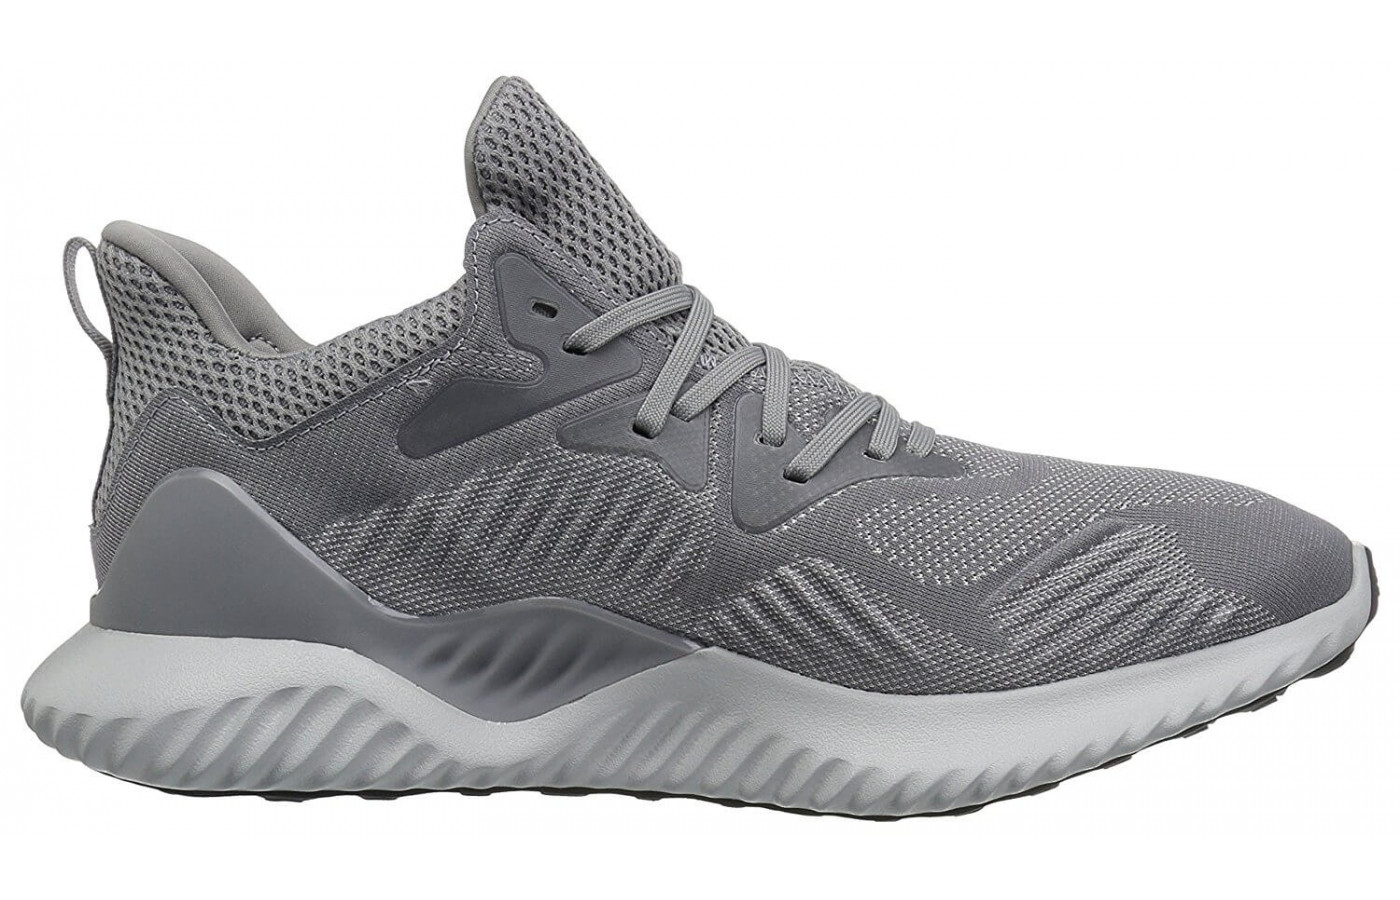 Adidas Alphabounce Beyond - To Buy or Not in Apr 2019  fc7ce5e15